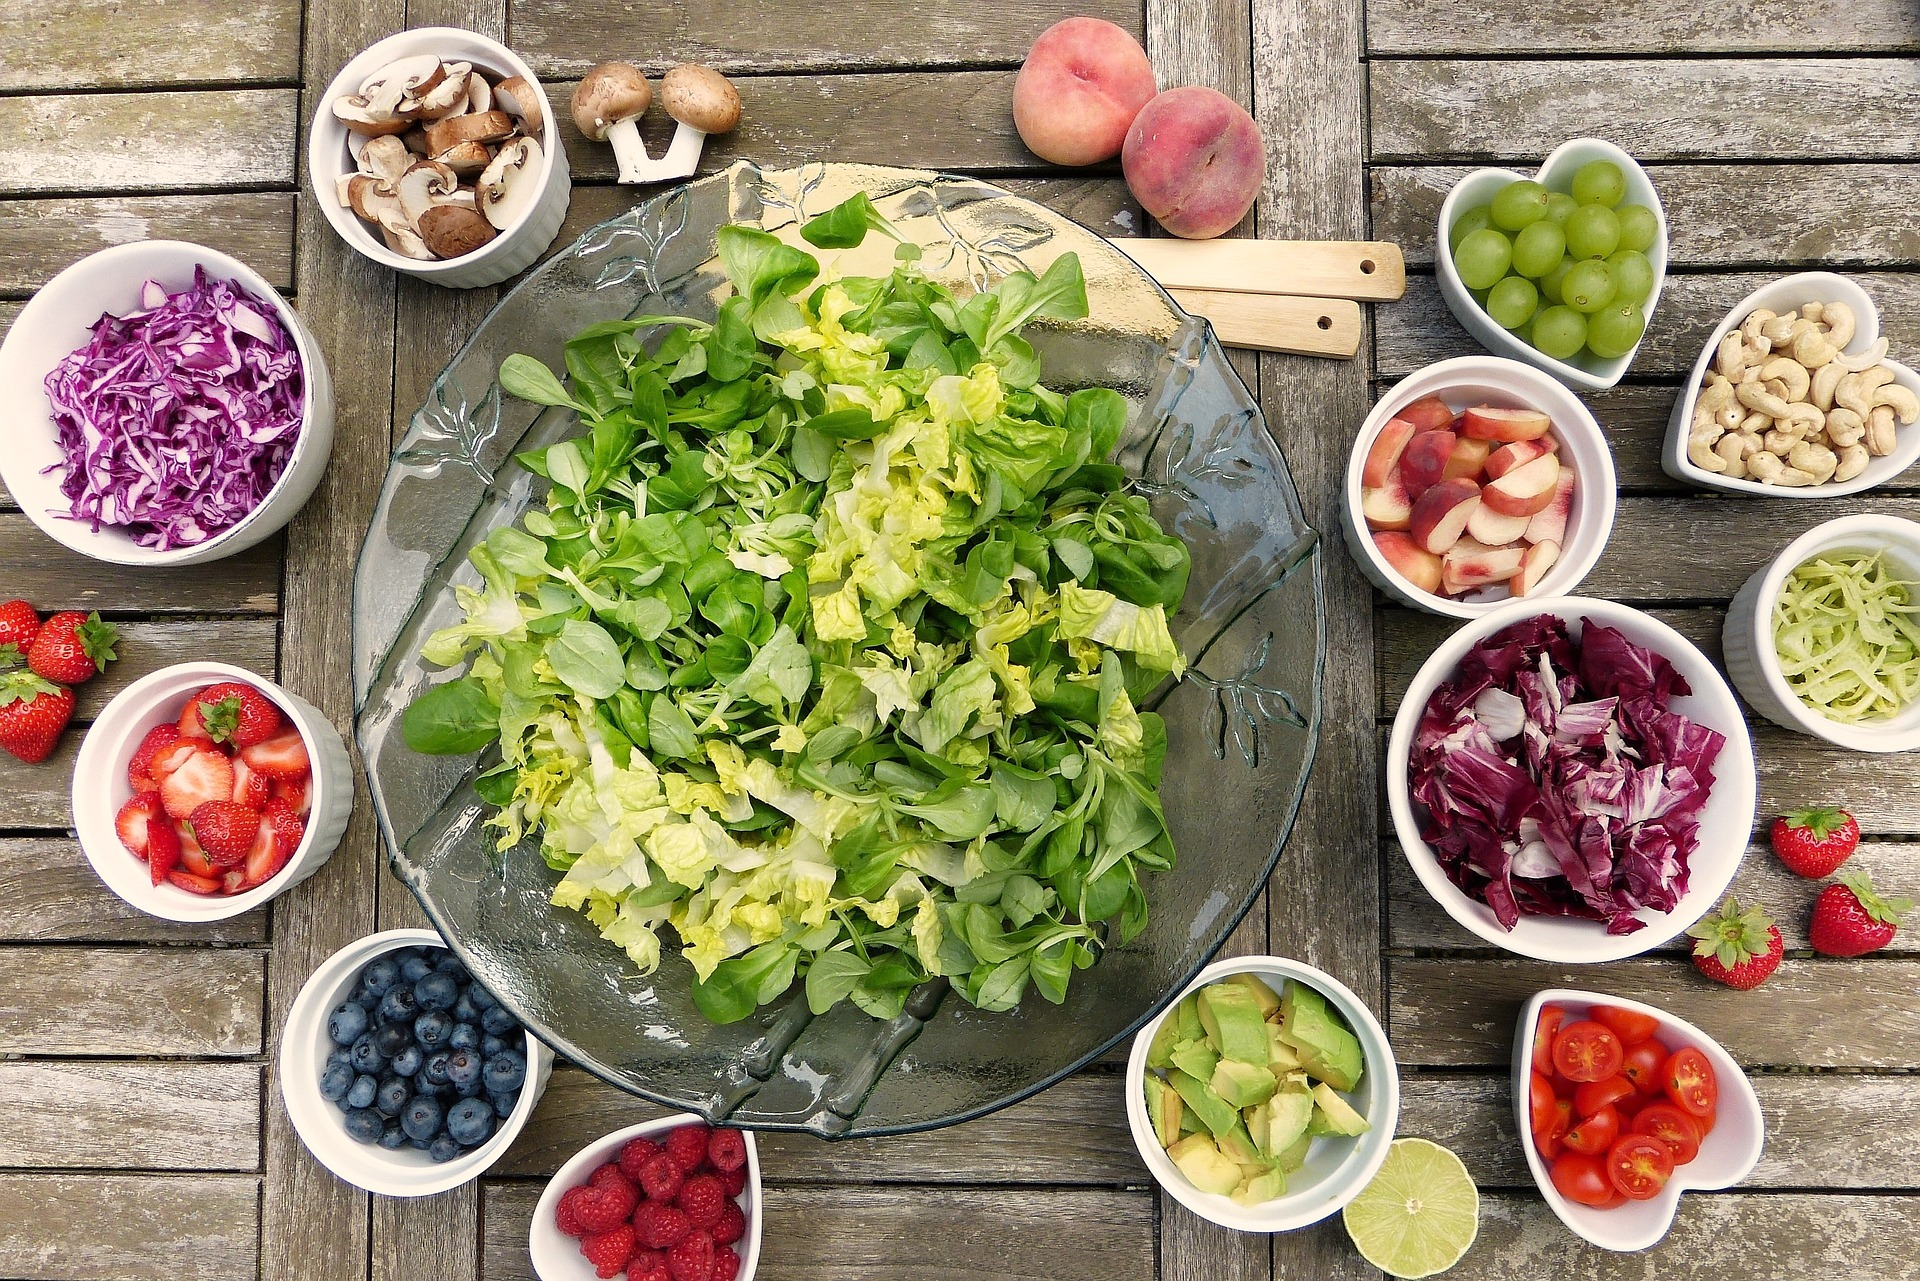 A vegetarian lifestyle contributes to a more sustainable planet